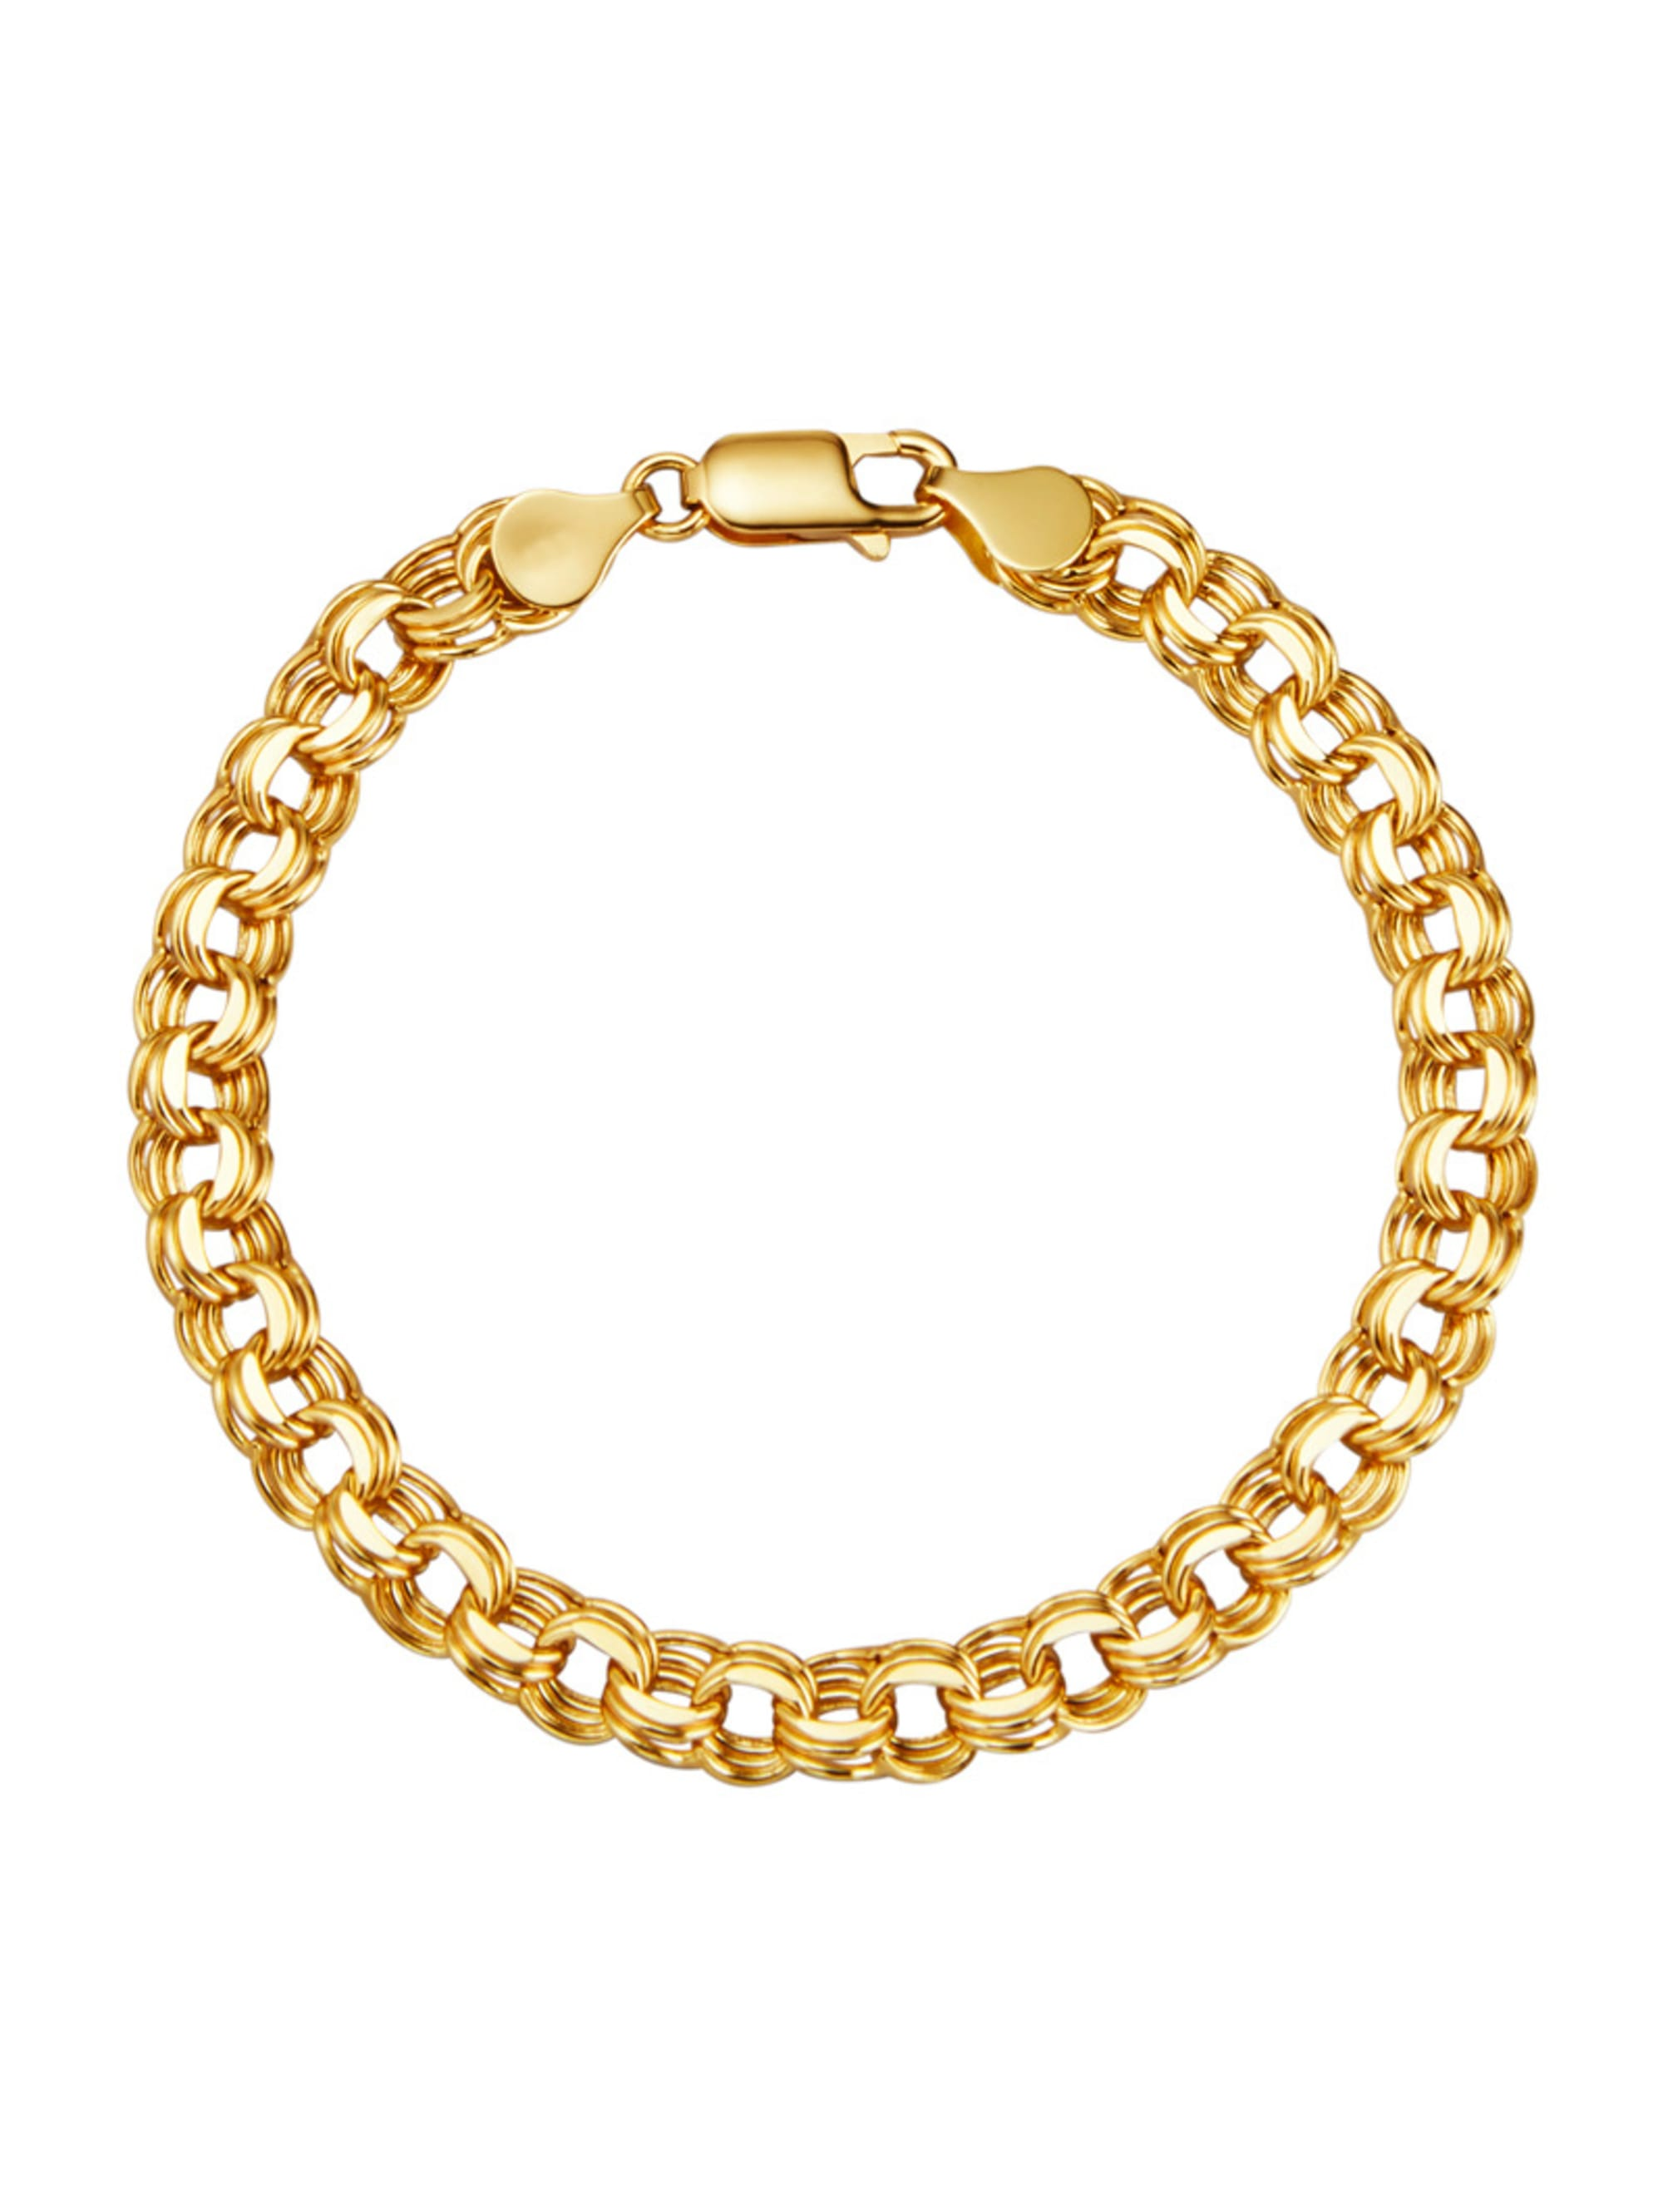 Diemer Gold Armband in Gelbgold 585 iqKHB